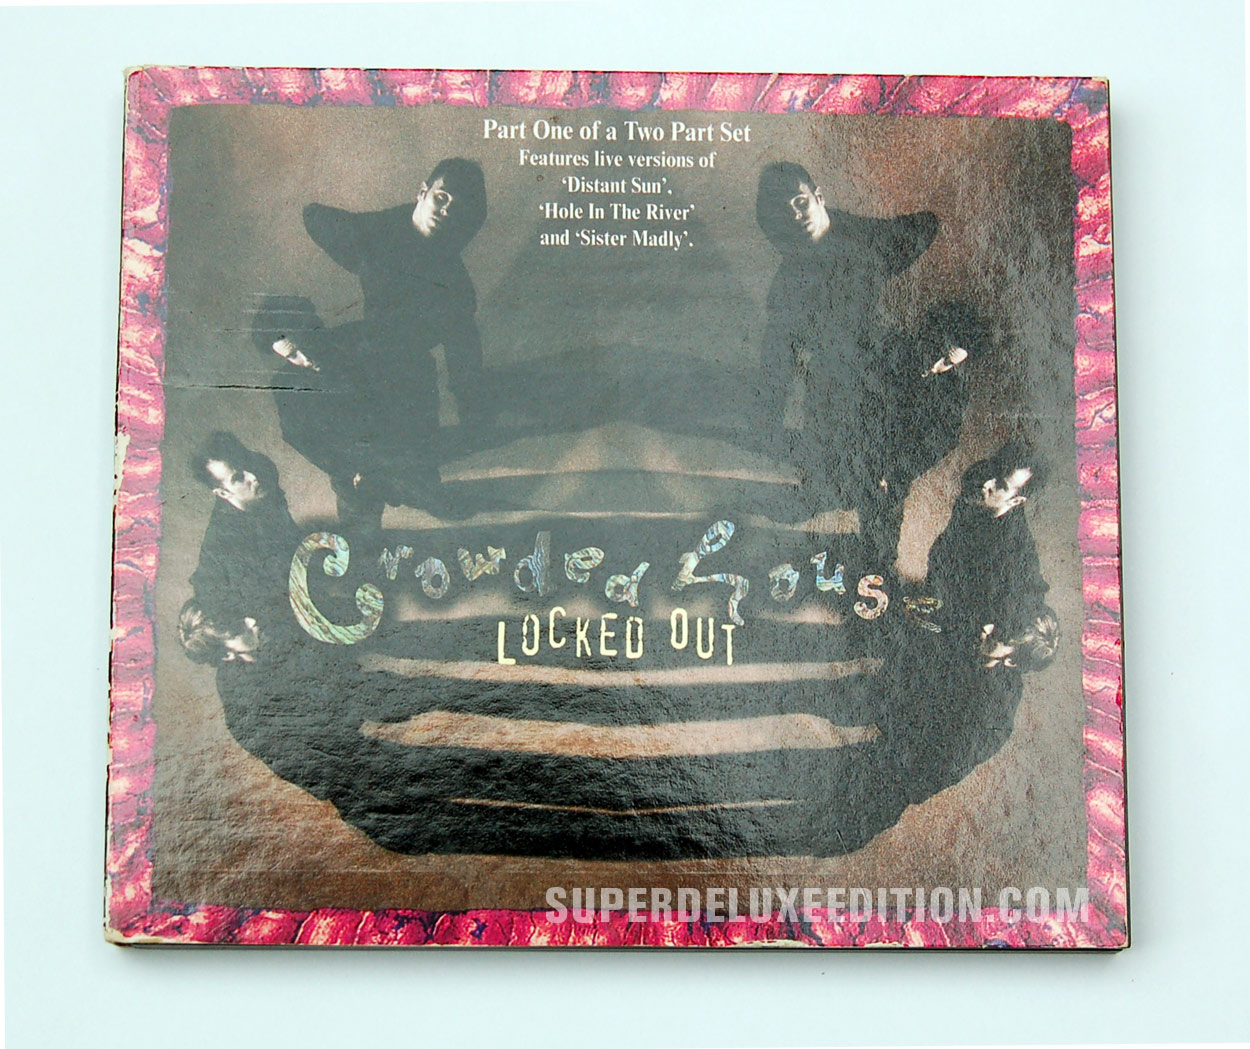 Crowded House / Locked Out CD Single